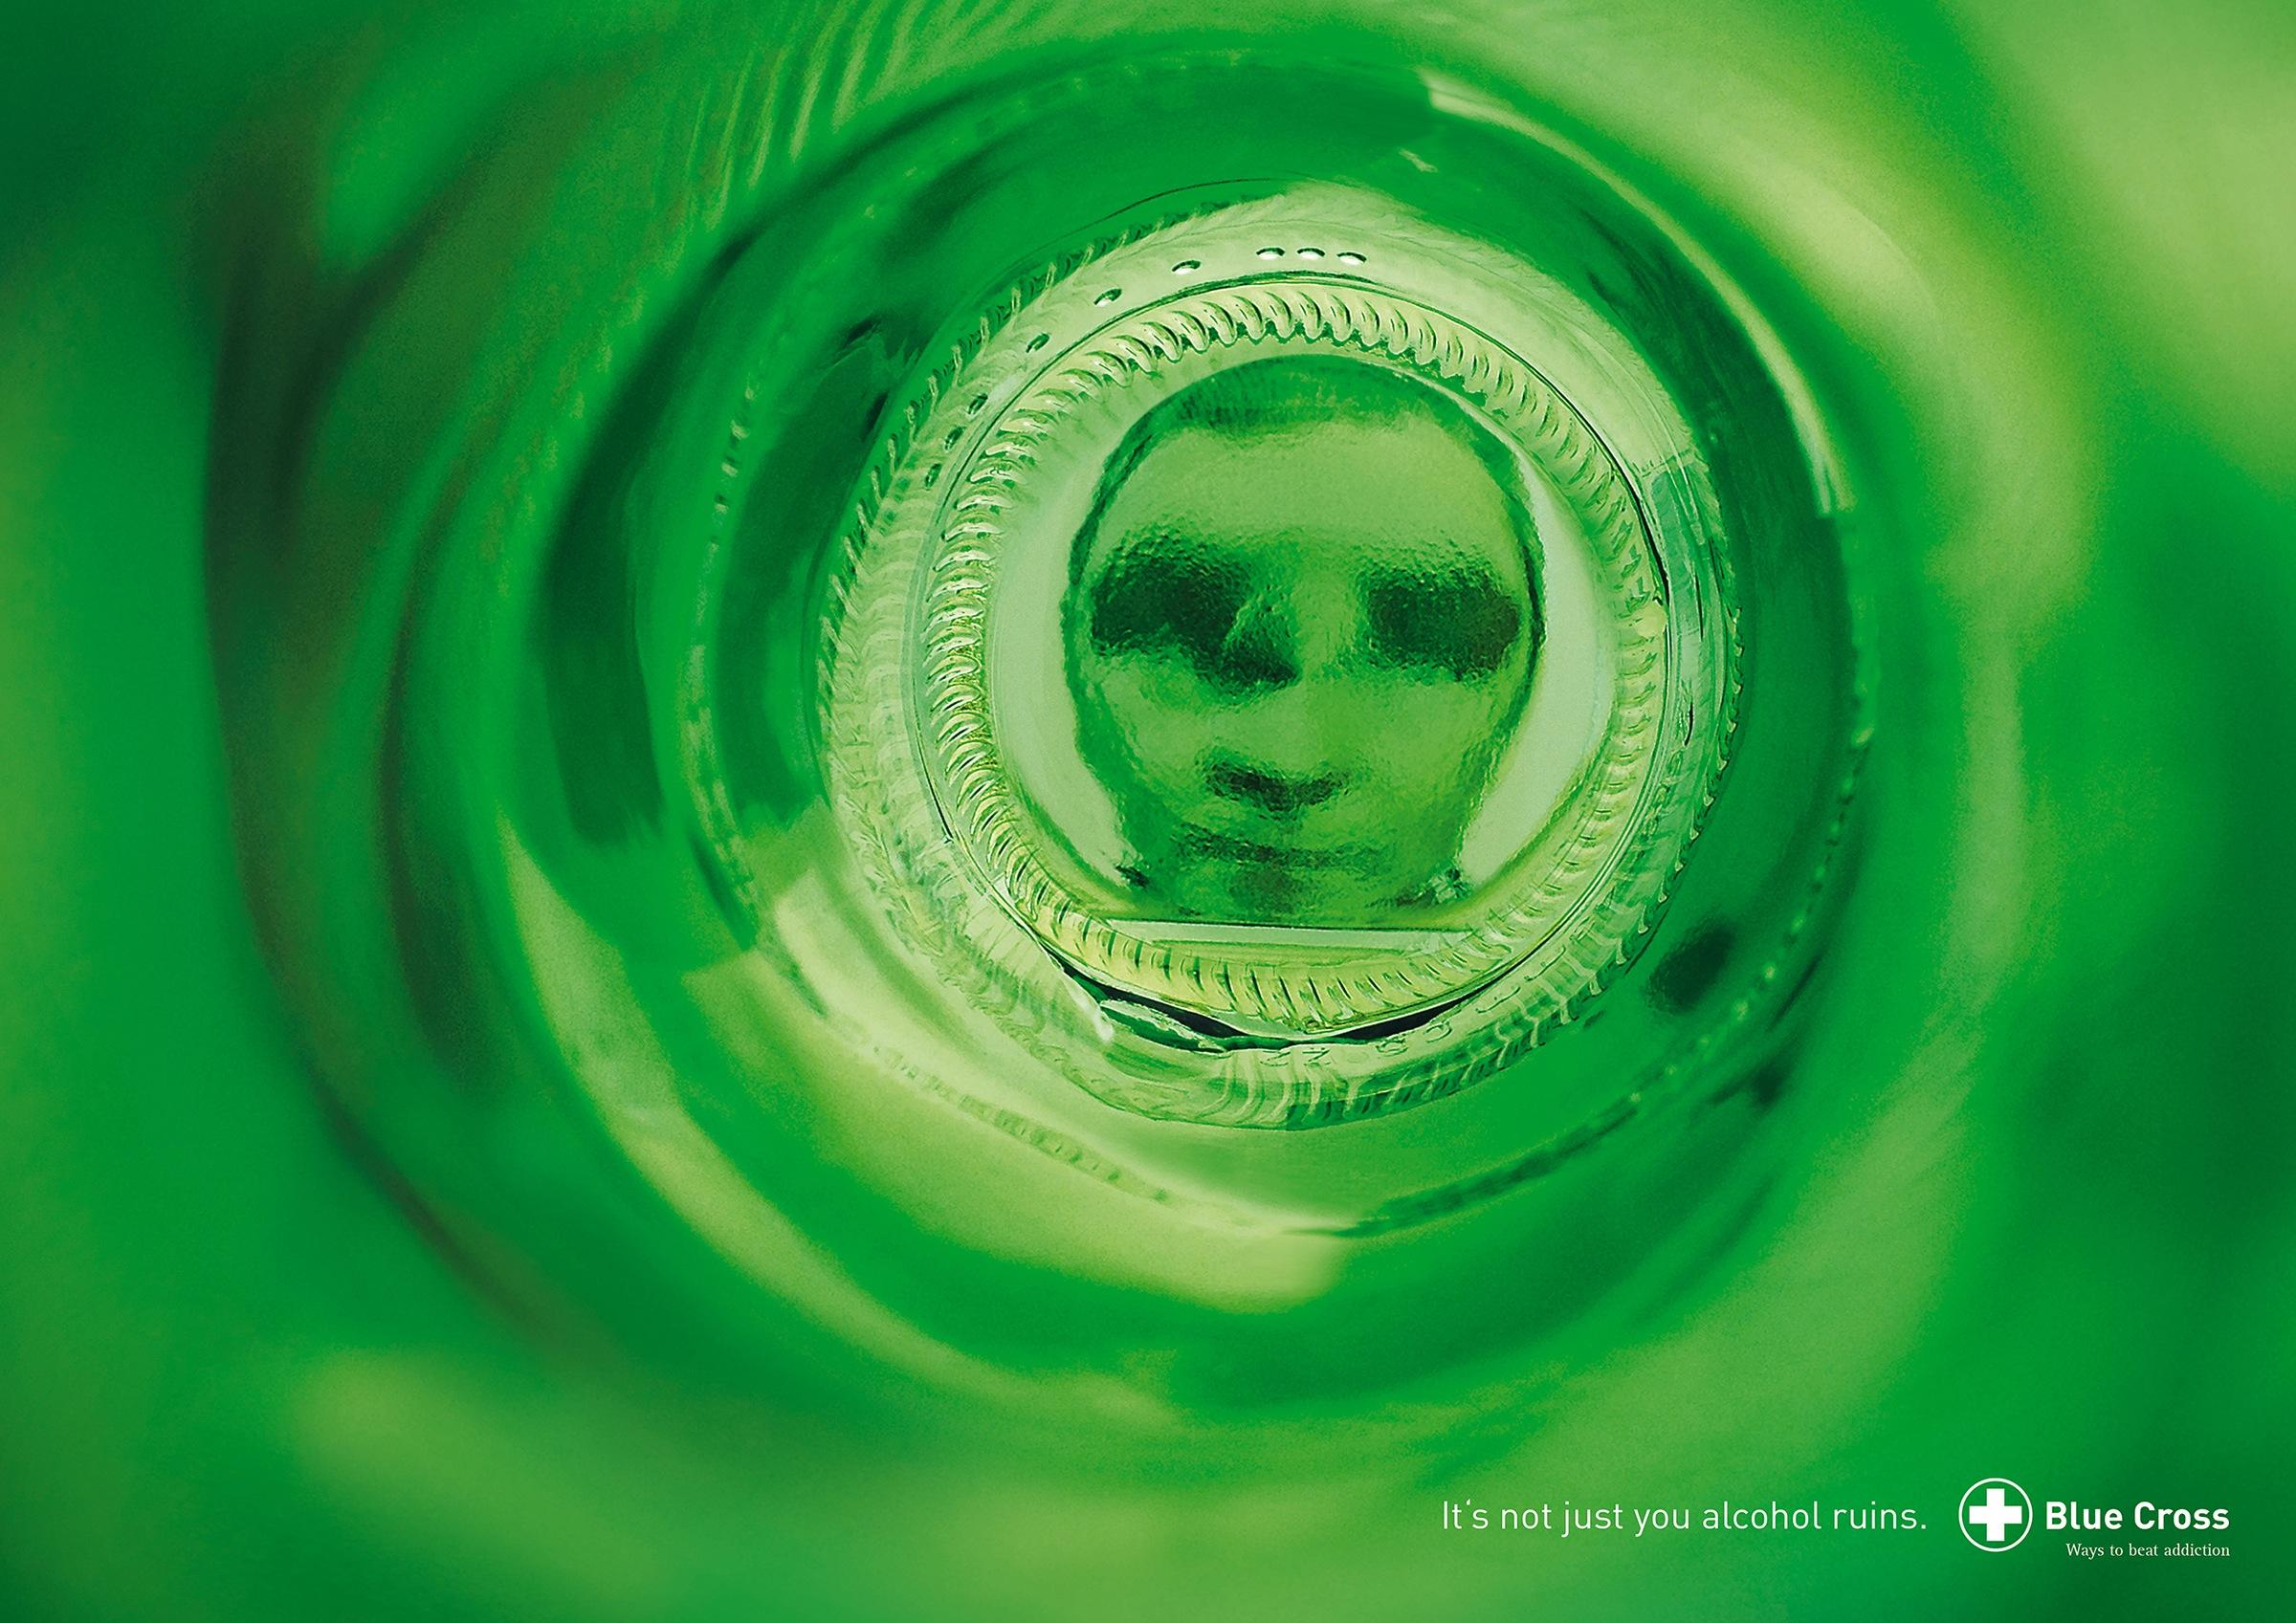 Blue Cross Print Ad -  Bottle Faces - Desperate